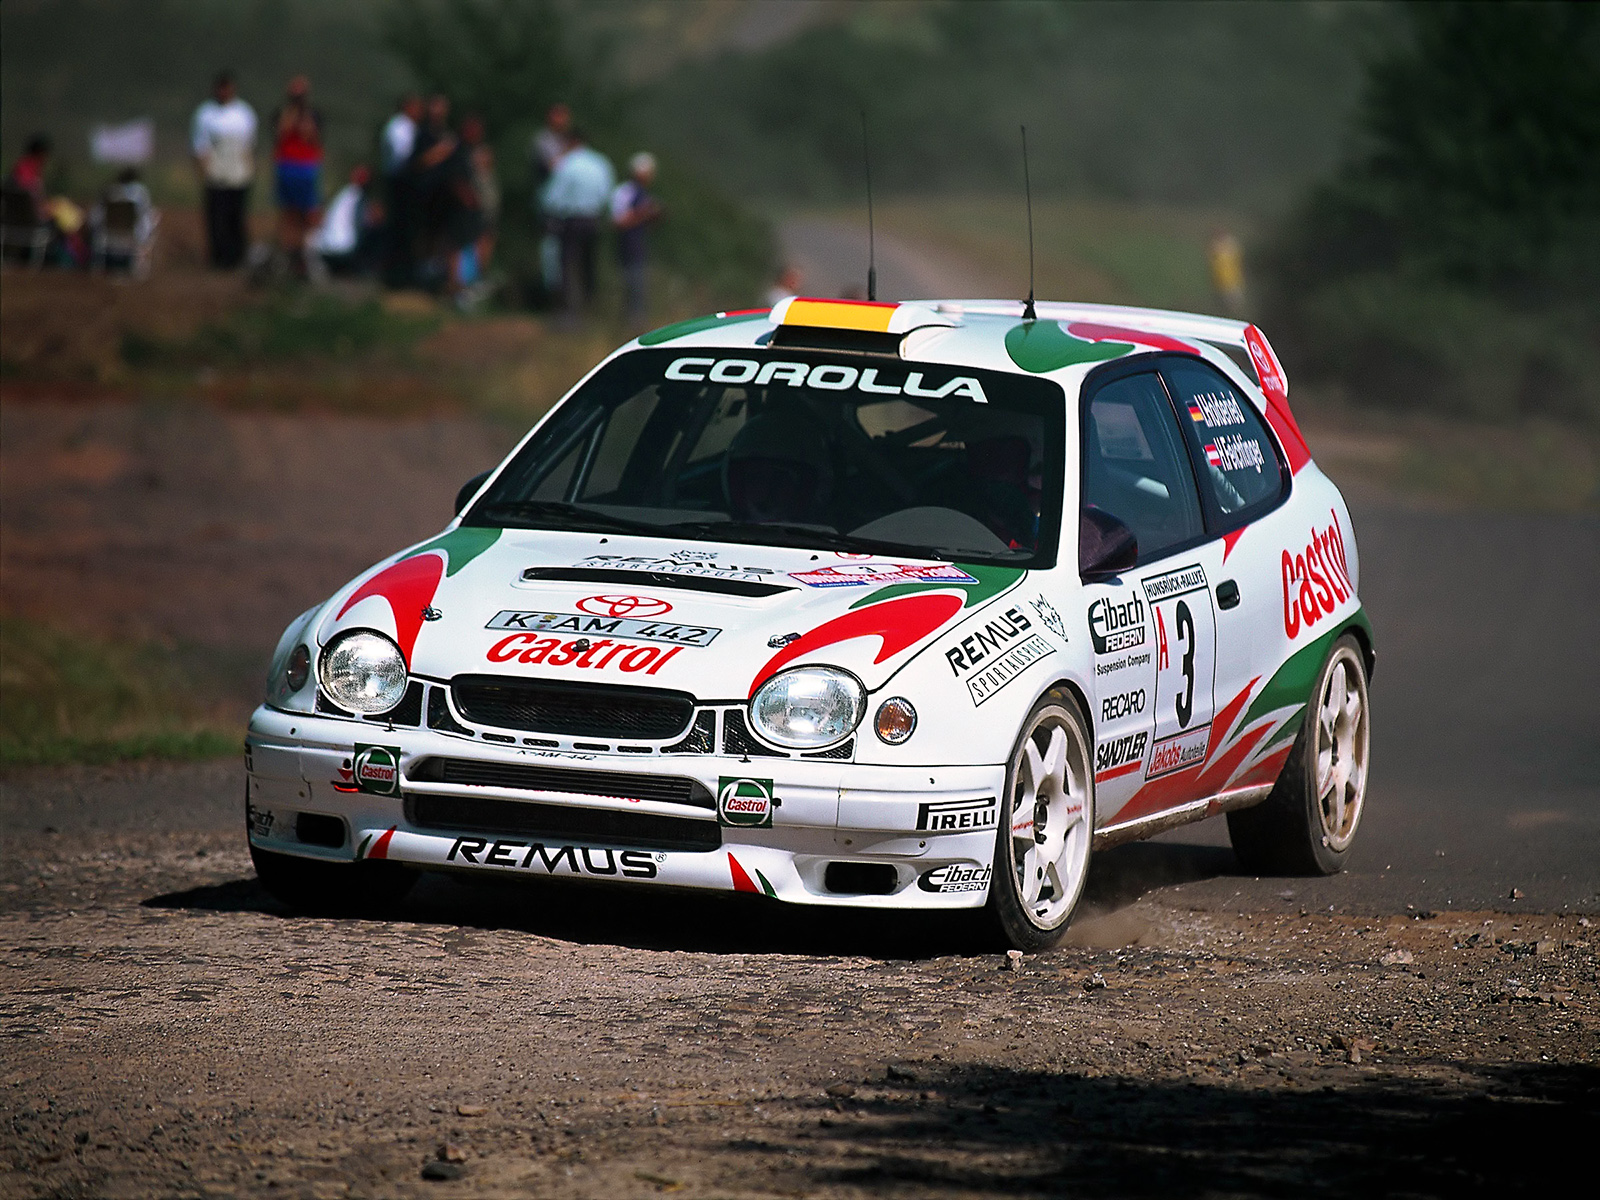 For me the most awesome WRC car ever is the Toyota Corolla What do ...